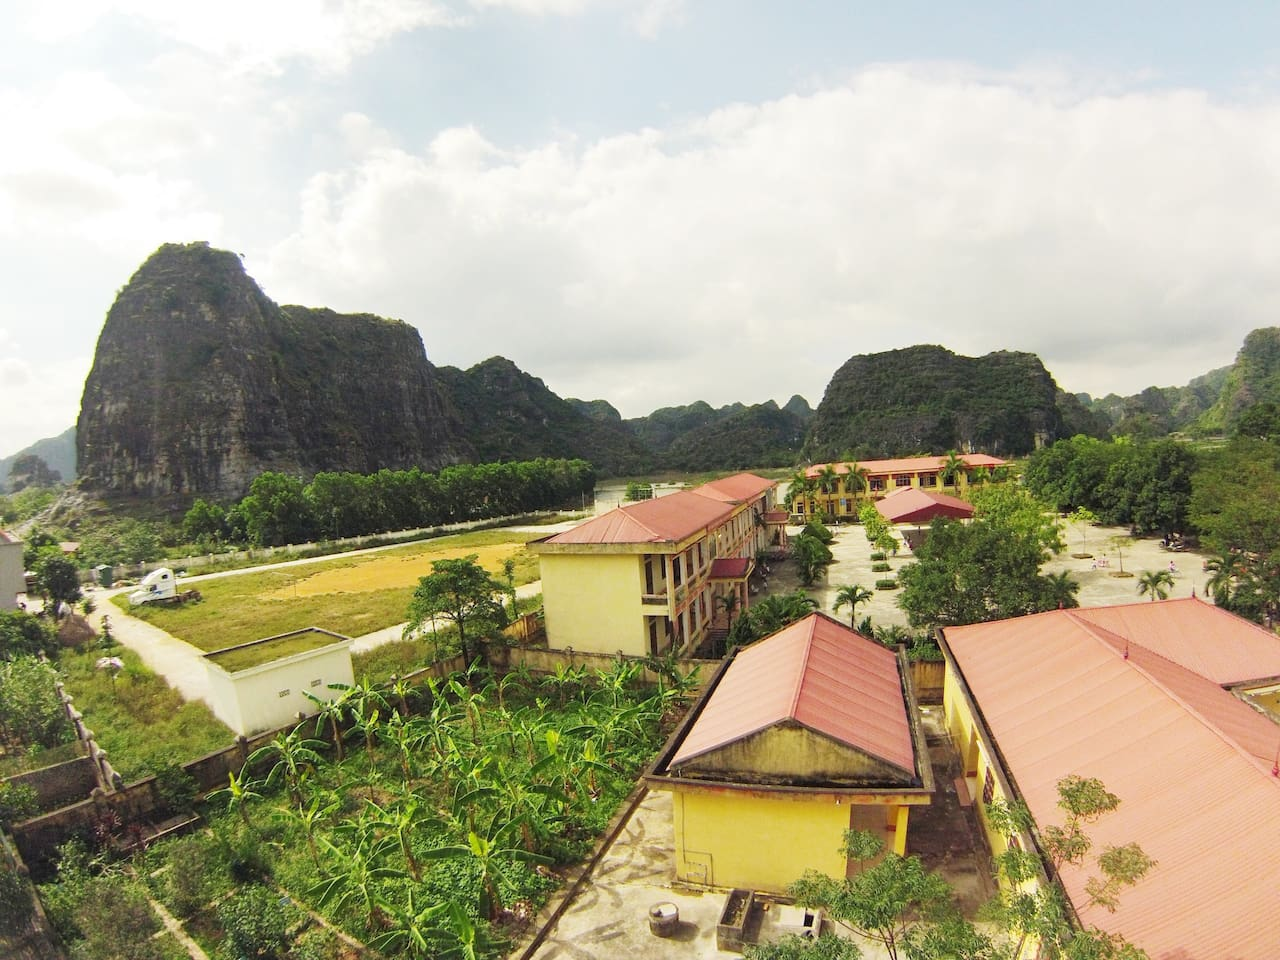 View from the homestay